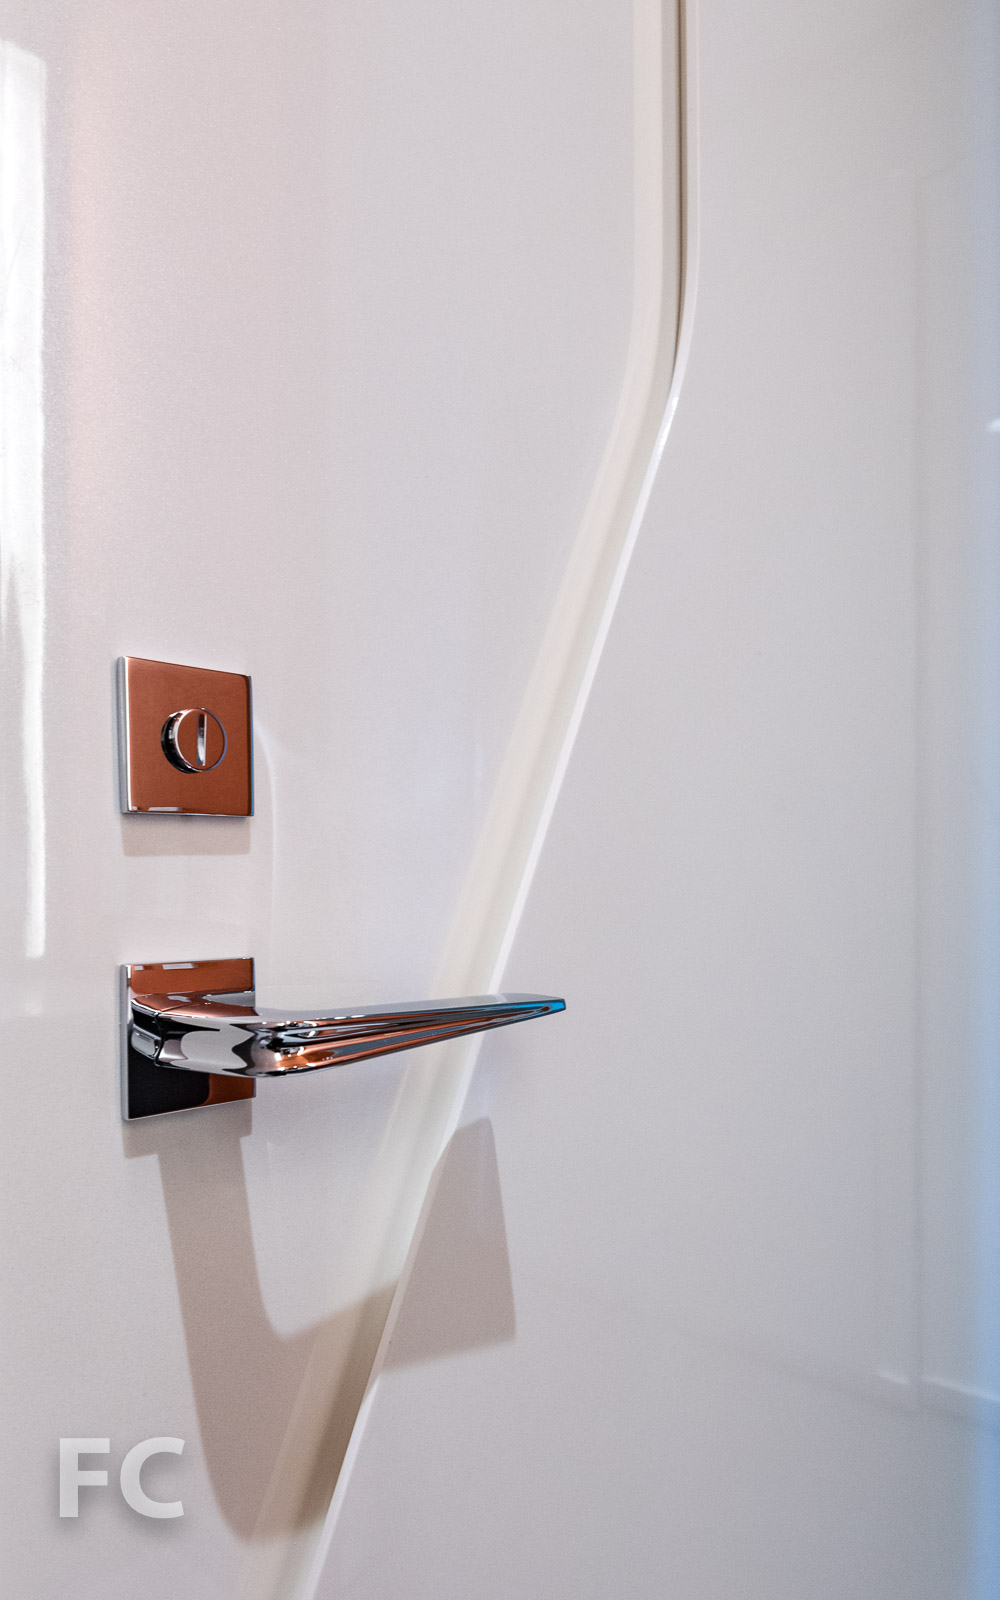 Powder room door handle.